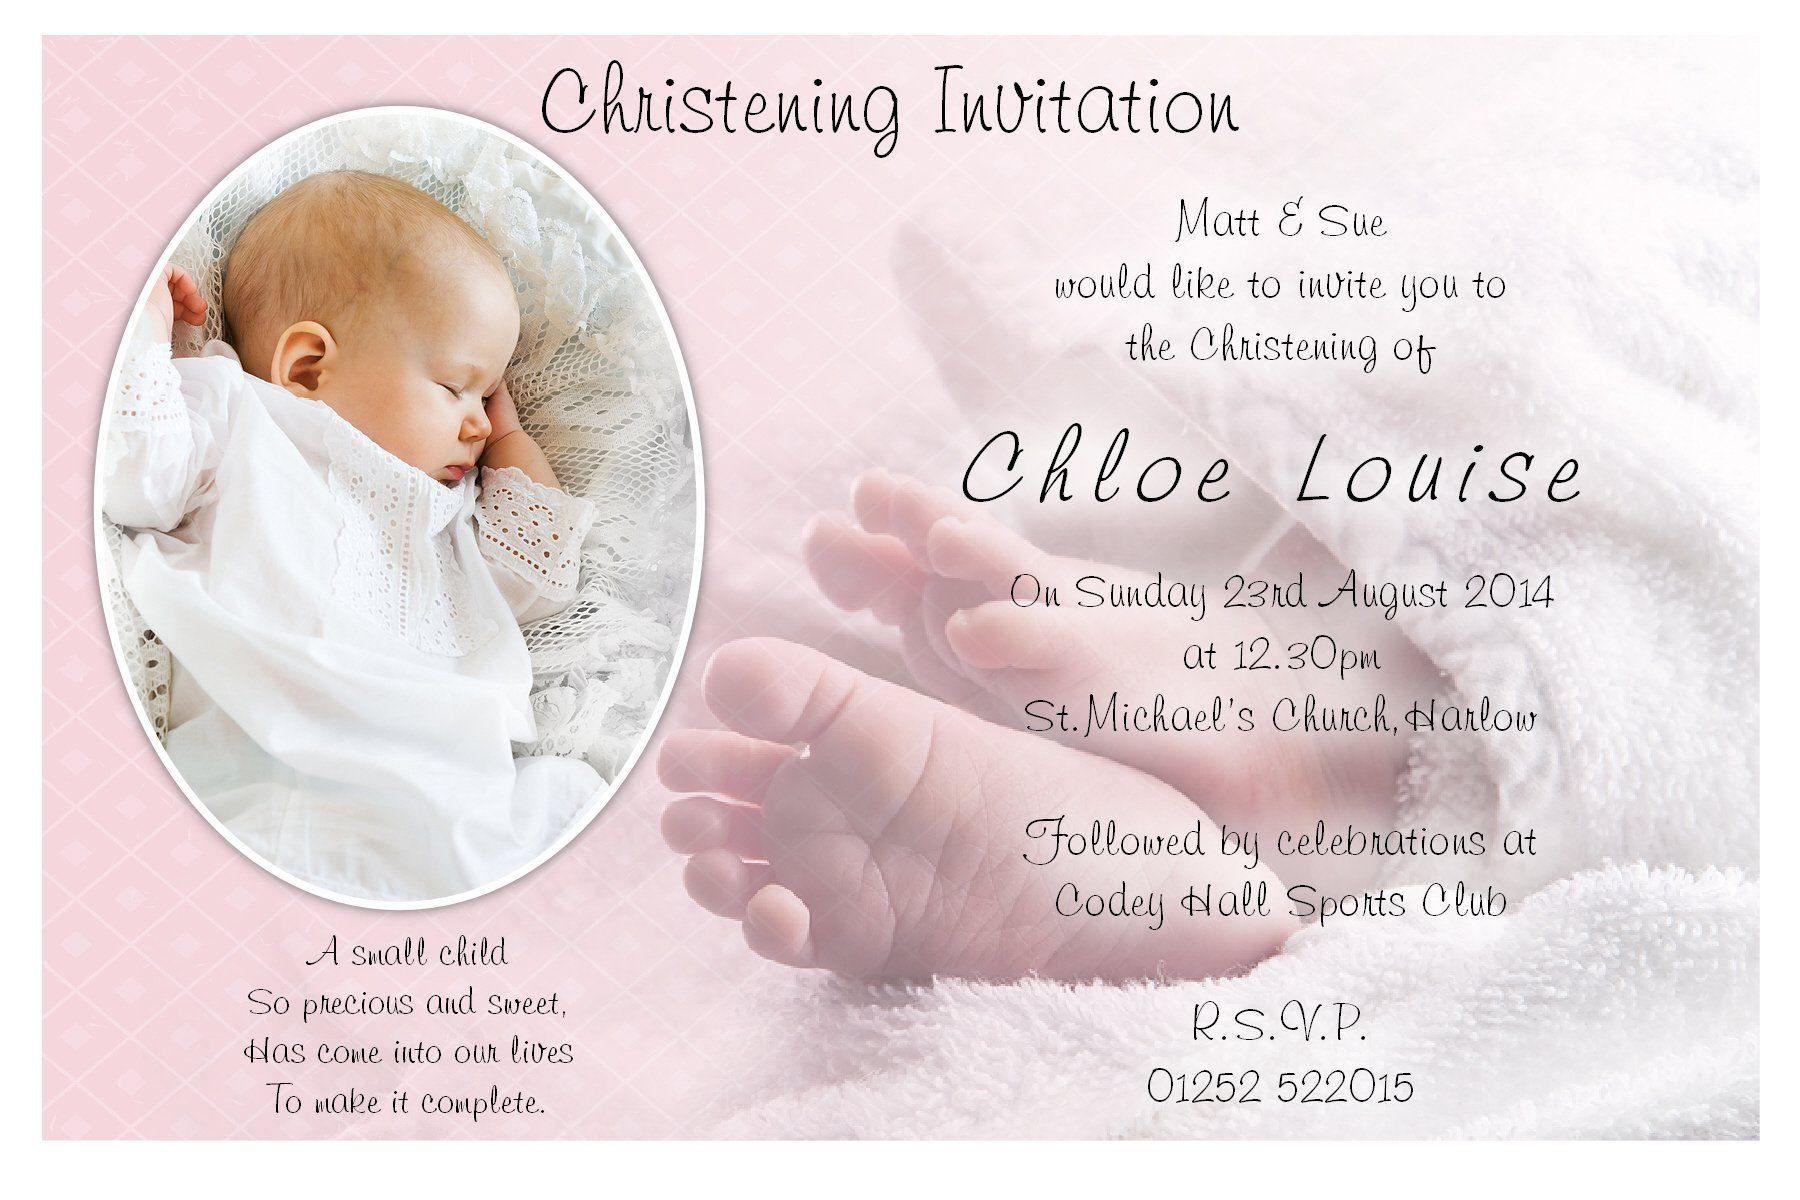 baptism-invitation-blank-templates-for-boy  Christening